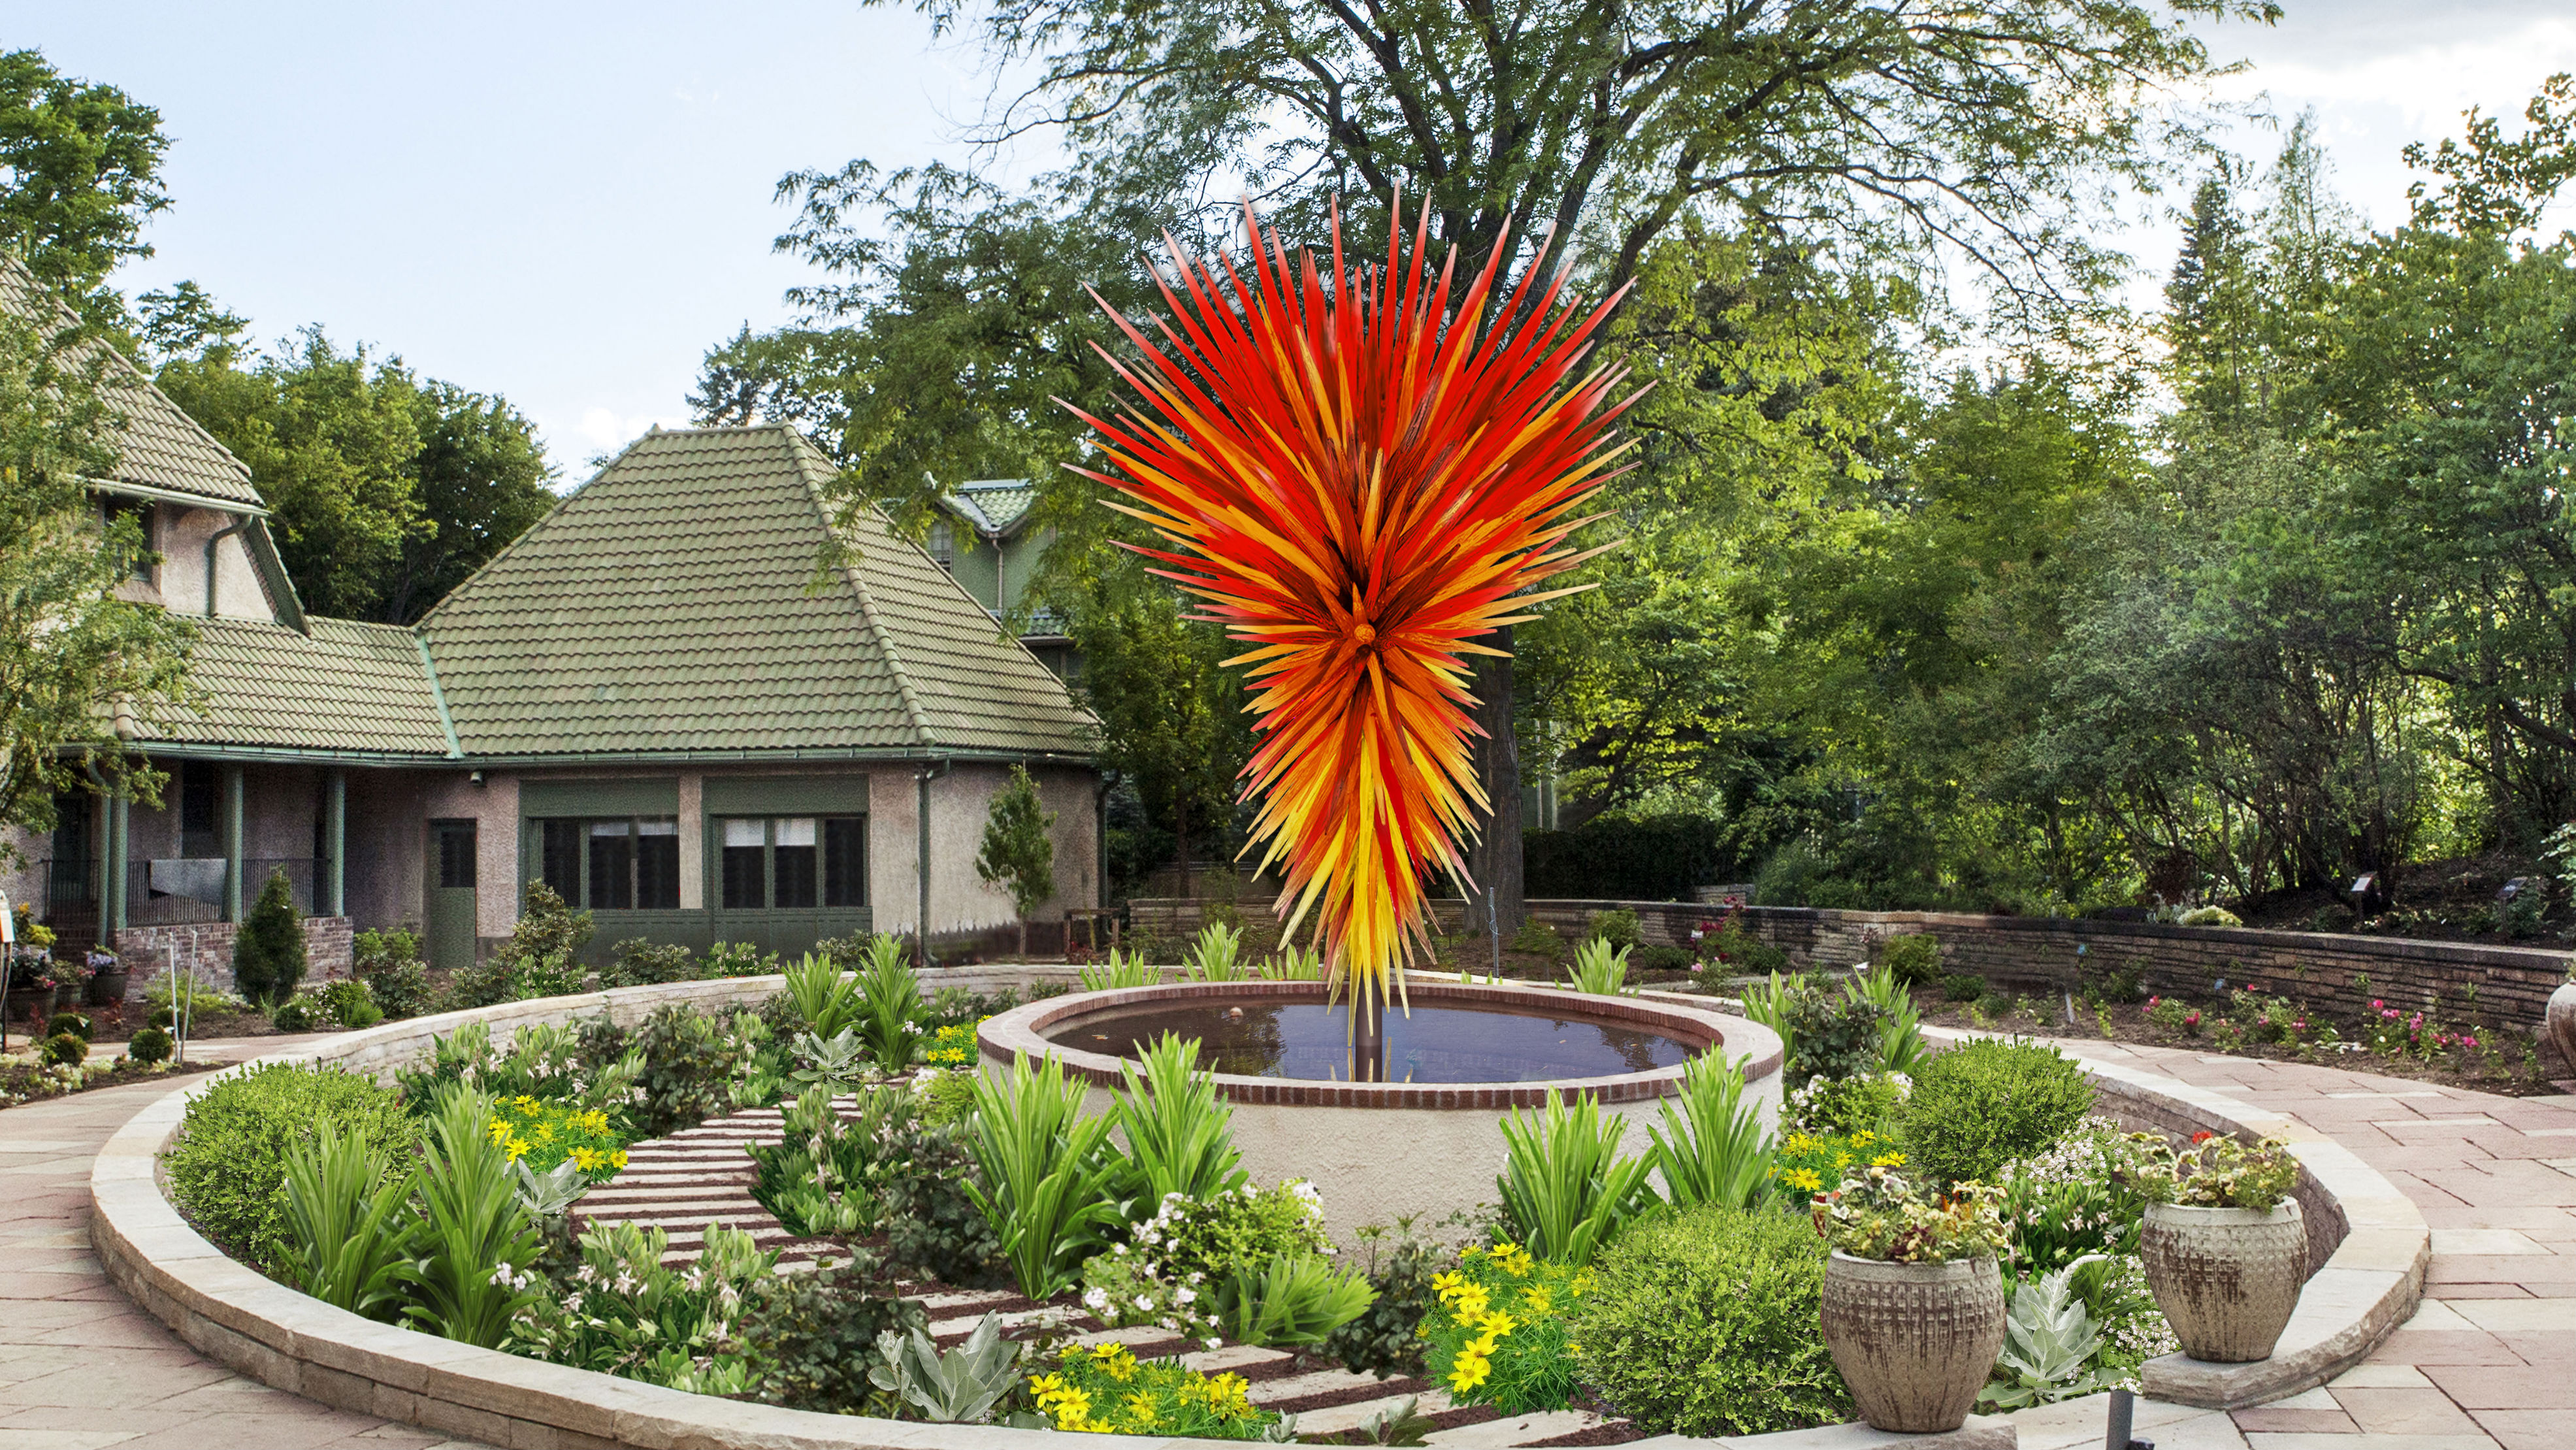 Photo: Chihuly 'Colorado' for Botanic Gardens